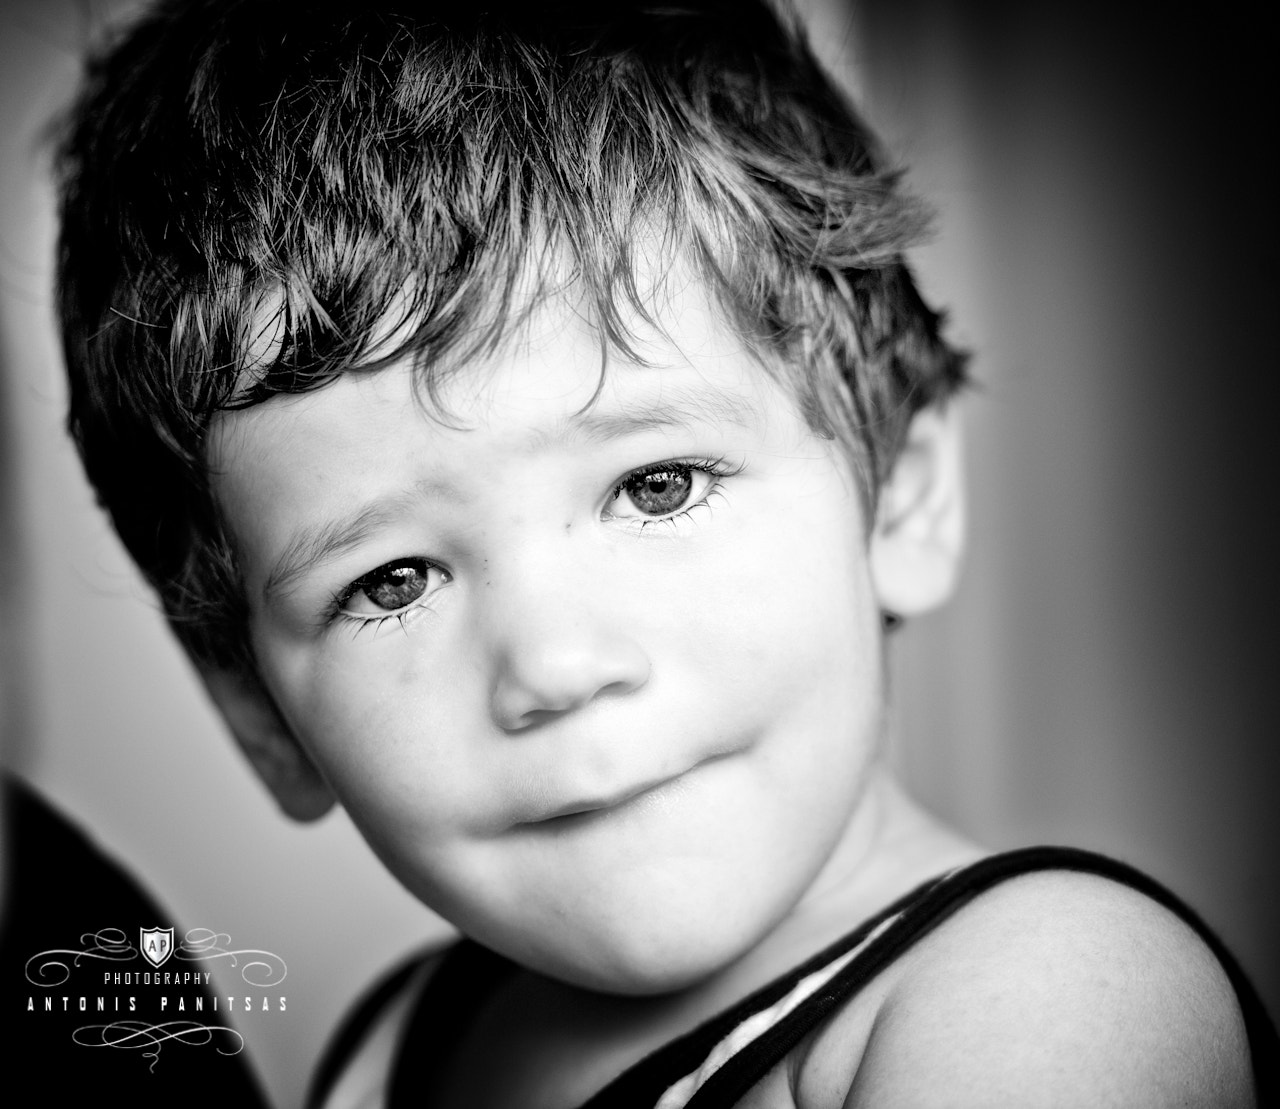 Photograph My lovely nephew by Antonis Panitsas on 500px